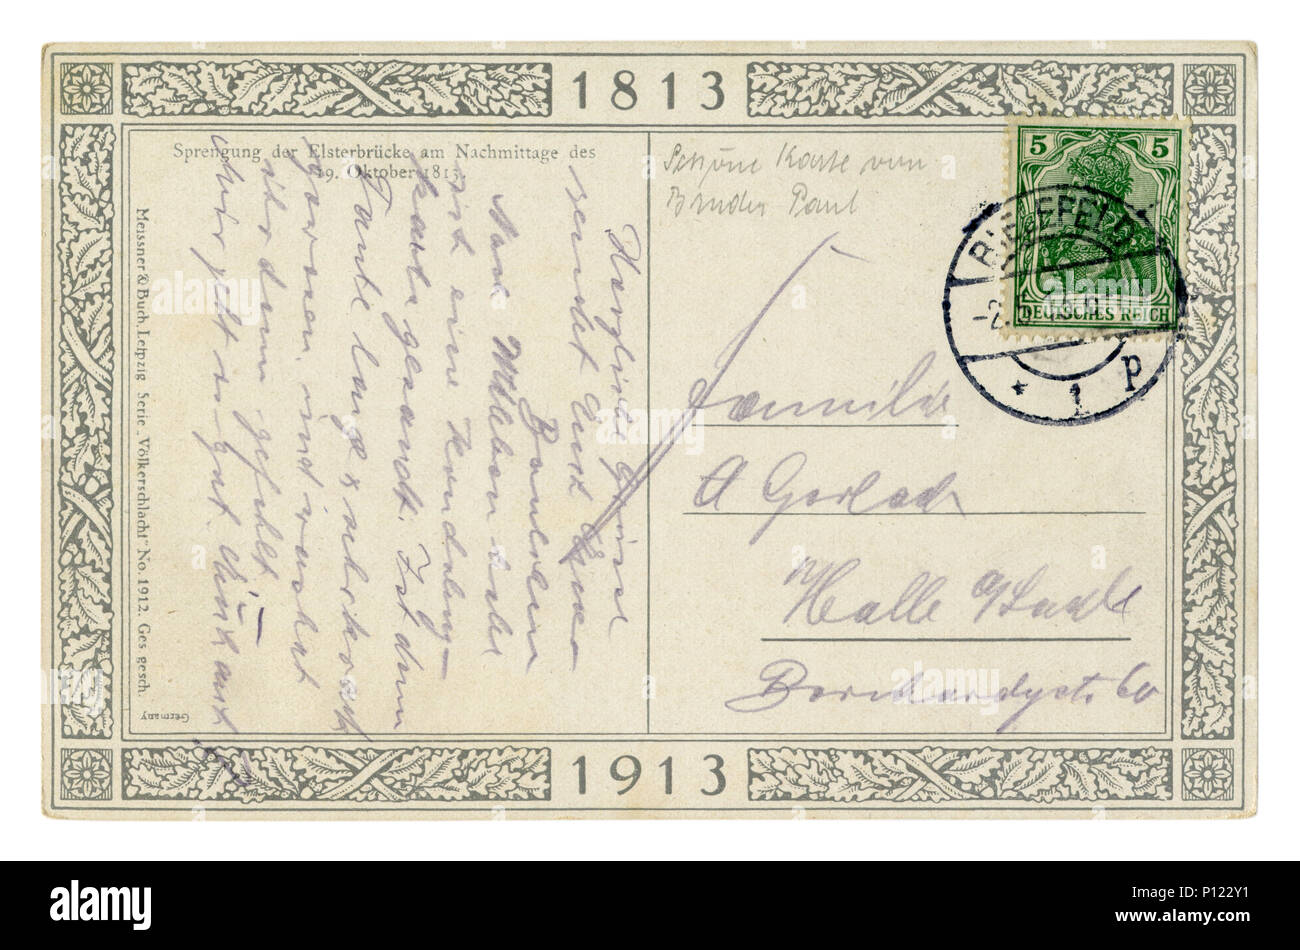 Back of historical German postcard (P122WG) letter written in pencil, 100th anniversary of the battle of the Nations 1813-1913 with stamp and postmark - Stock Image